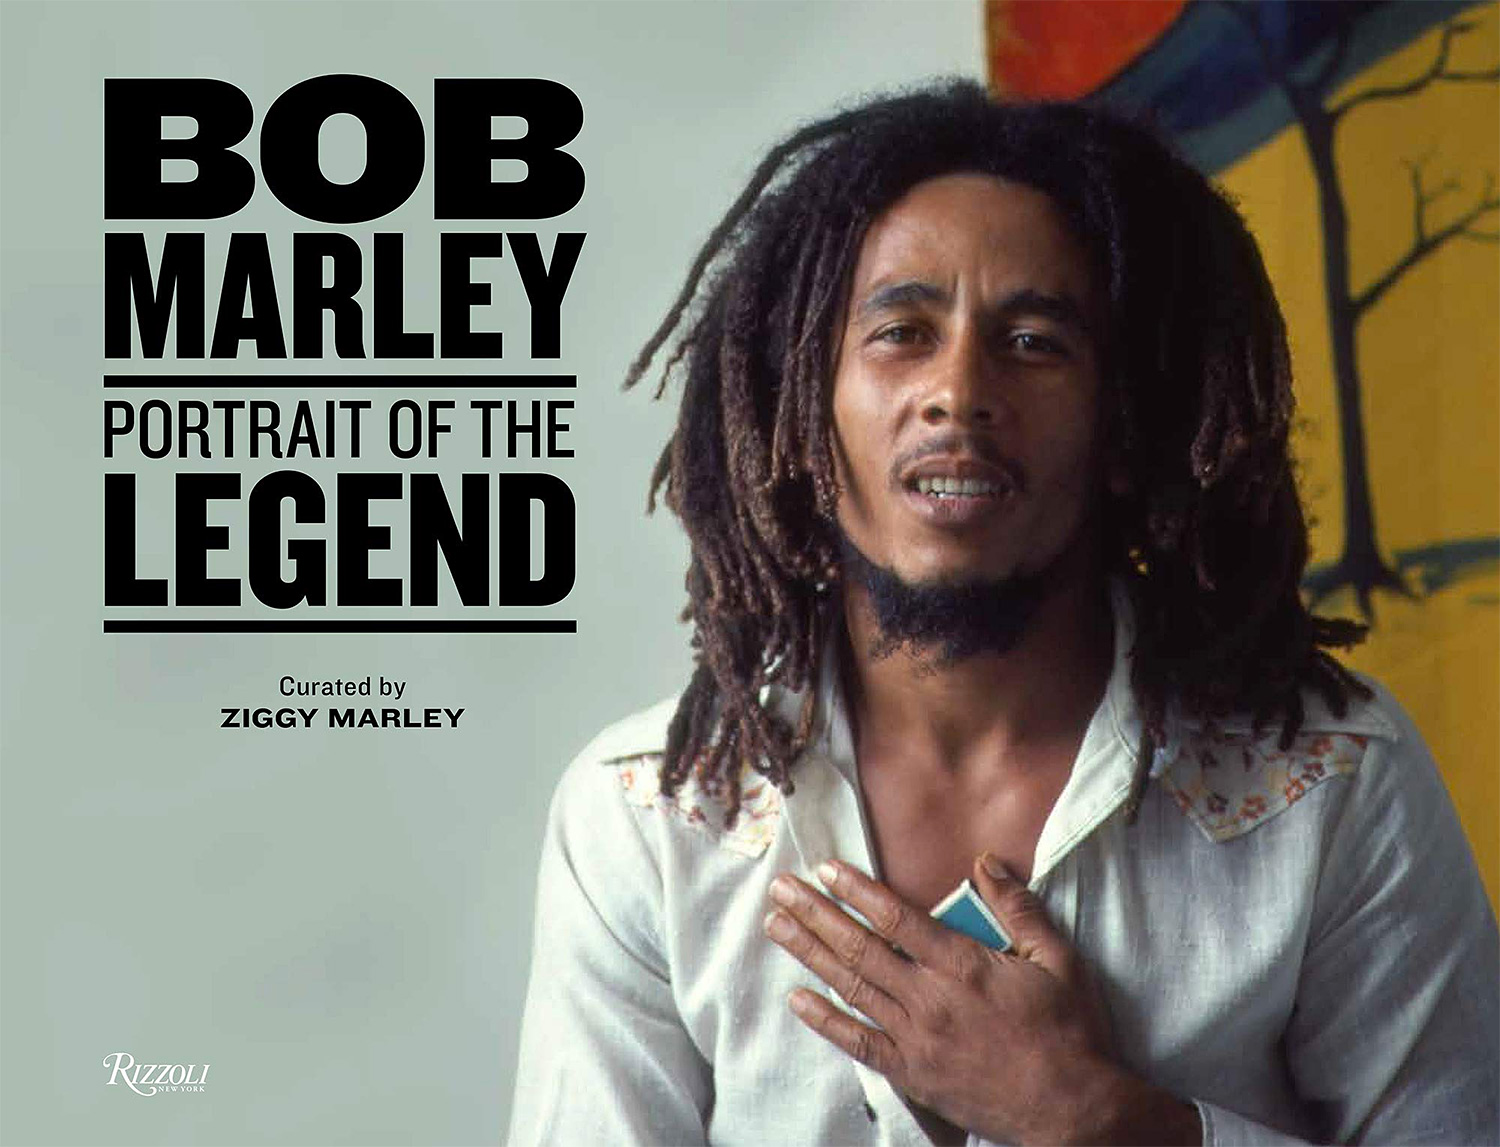 Bob Marley: Portrait of the Legend at werd.com